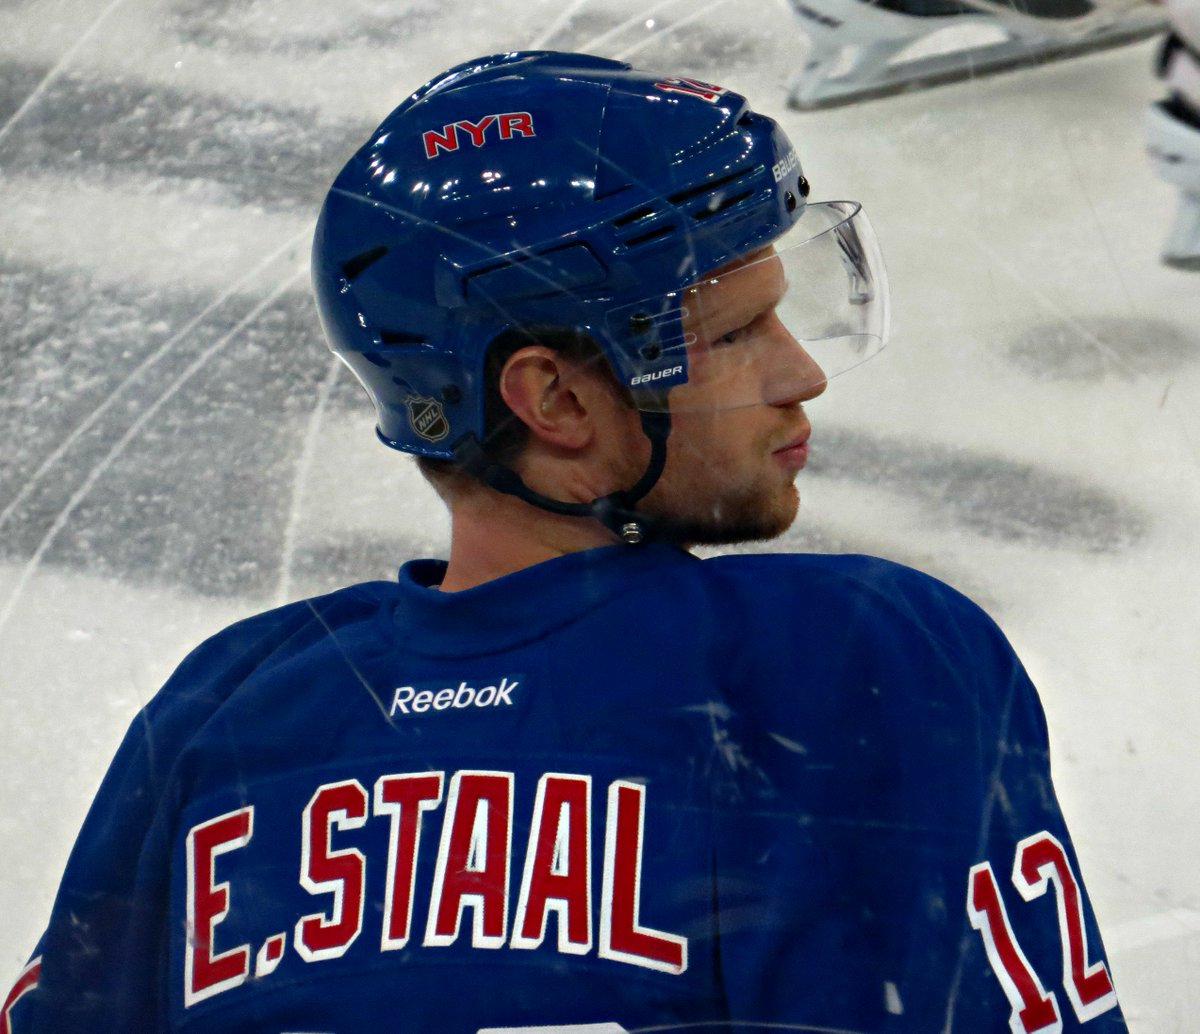 Some more looks at the newest Ranger, Eric Staal, shot from the stands: https://t.co/yDK9ATVIFY